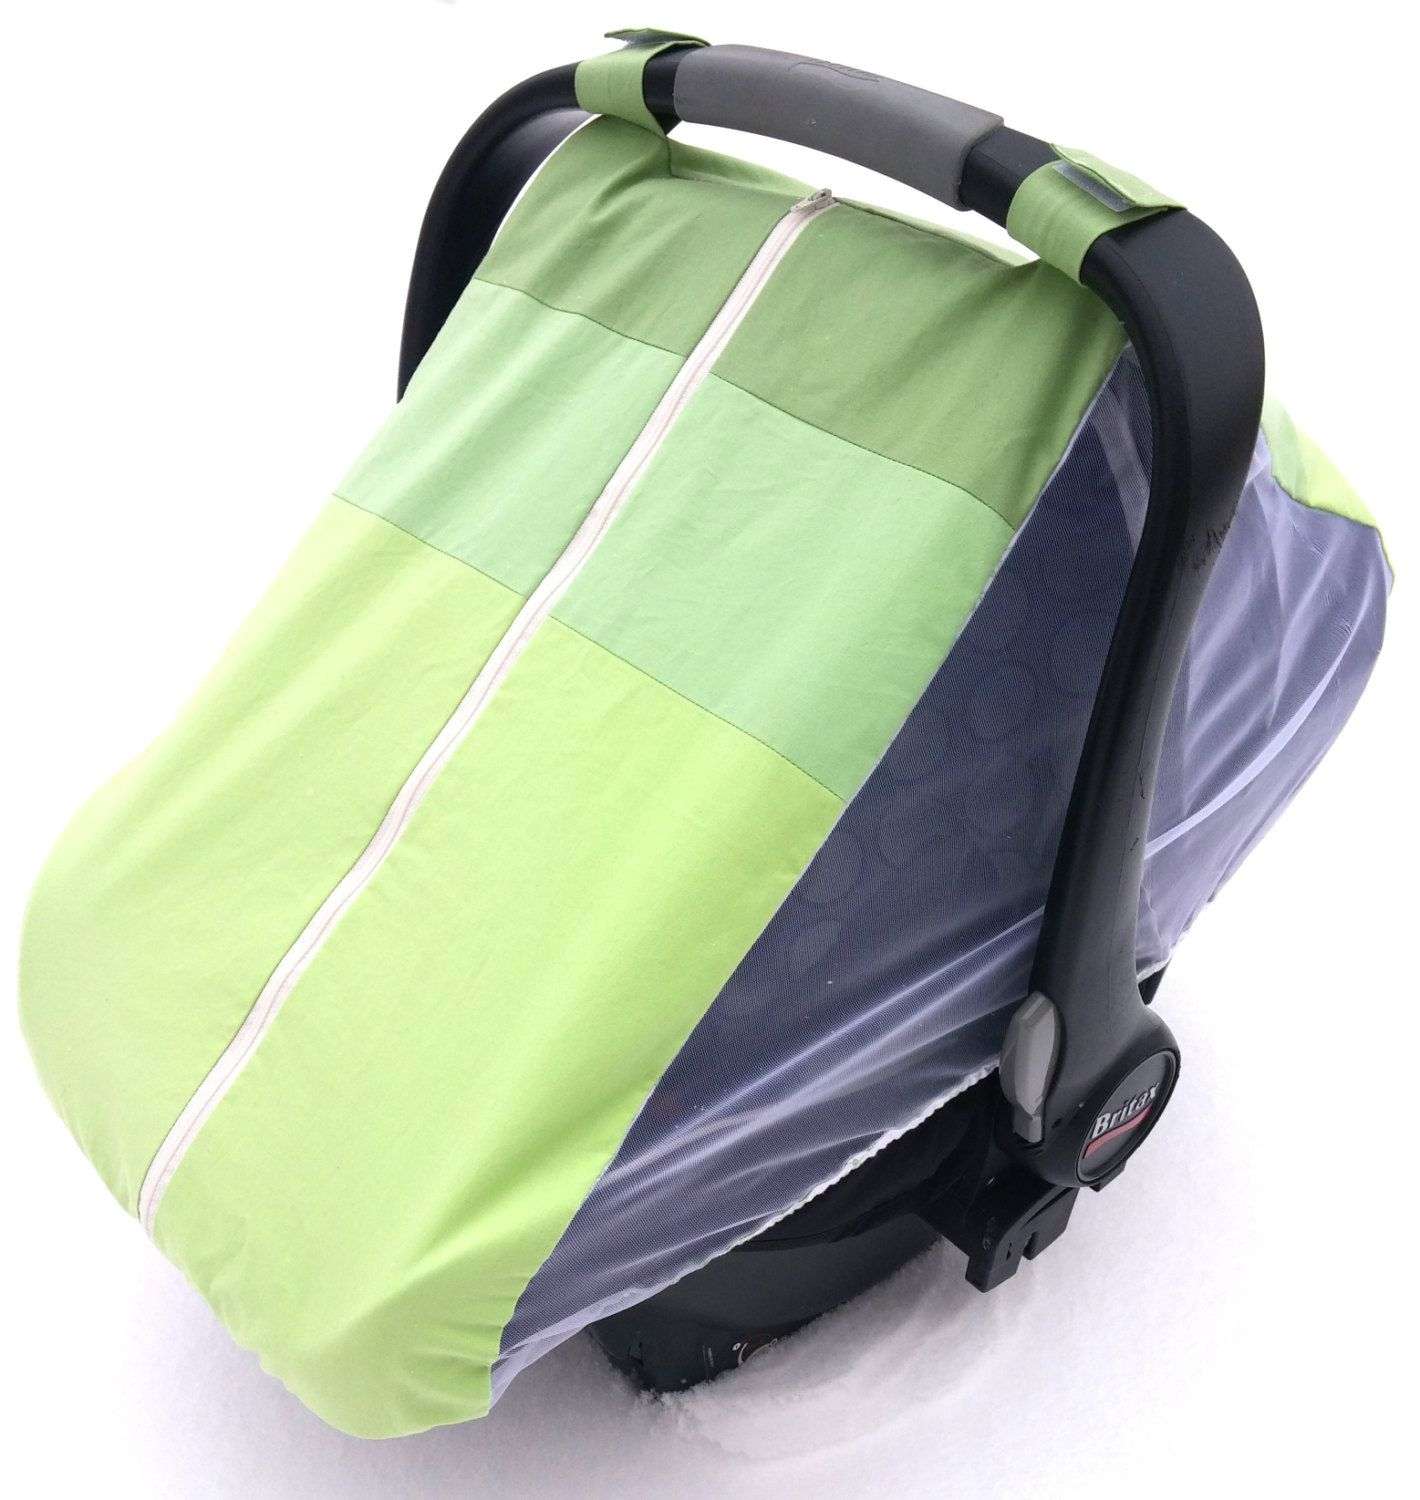 fitted cotton car seat cover for springsummer green ombre fitted infant carseat canopy - Green Canopy 2016